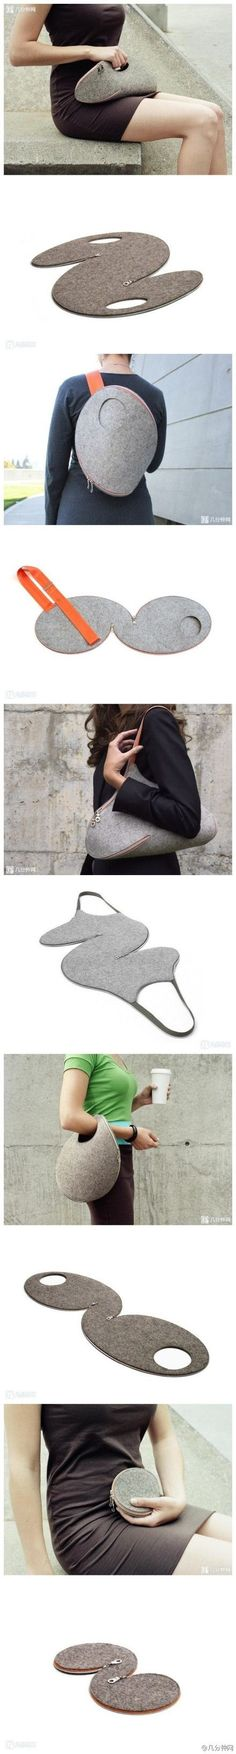 Convertible multi-size bag/purse. How cool would this be for traveling?!?! by Mariya pp